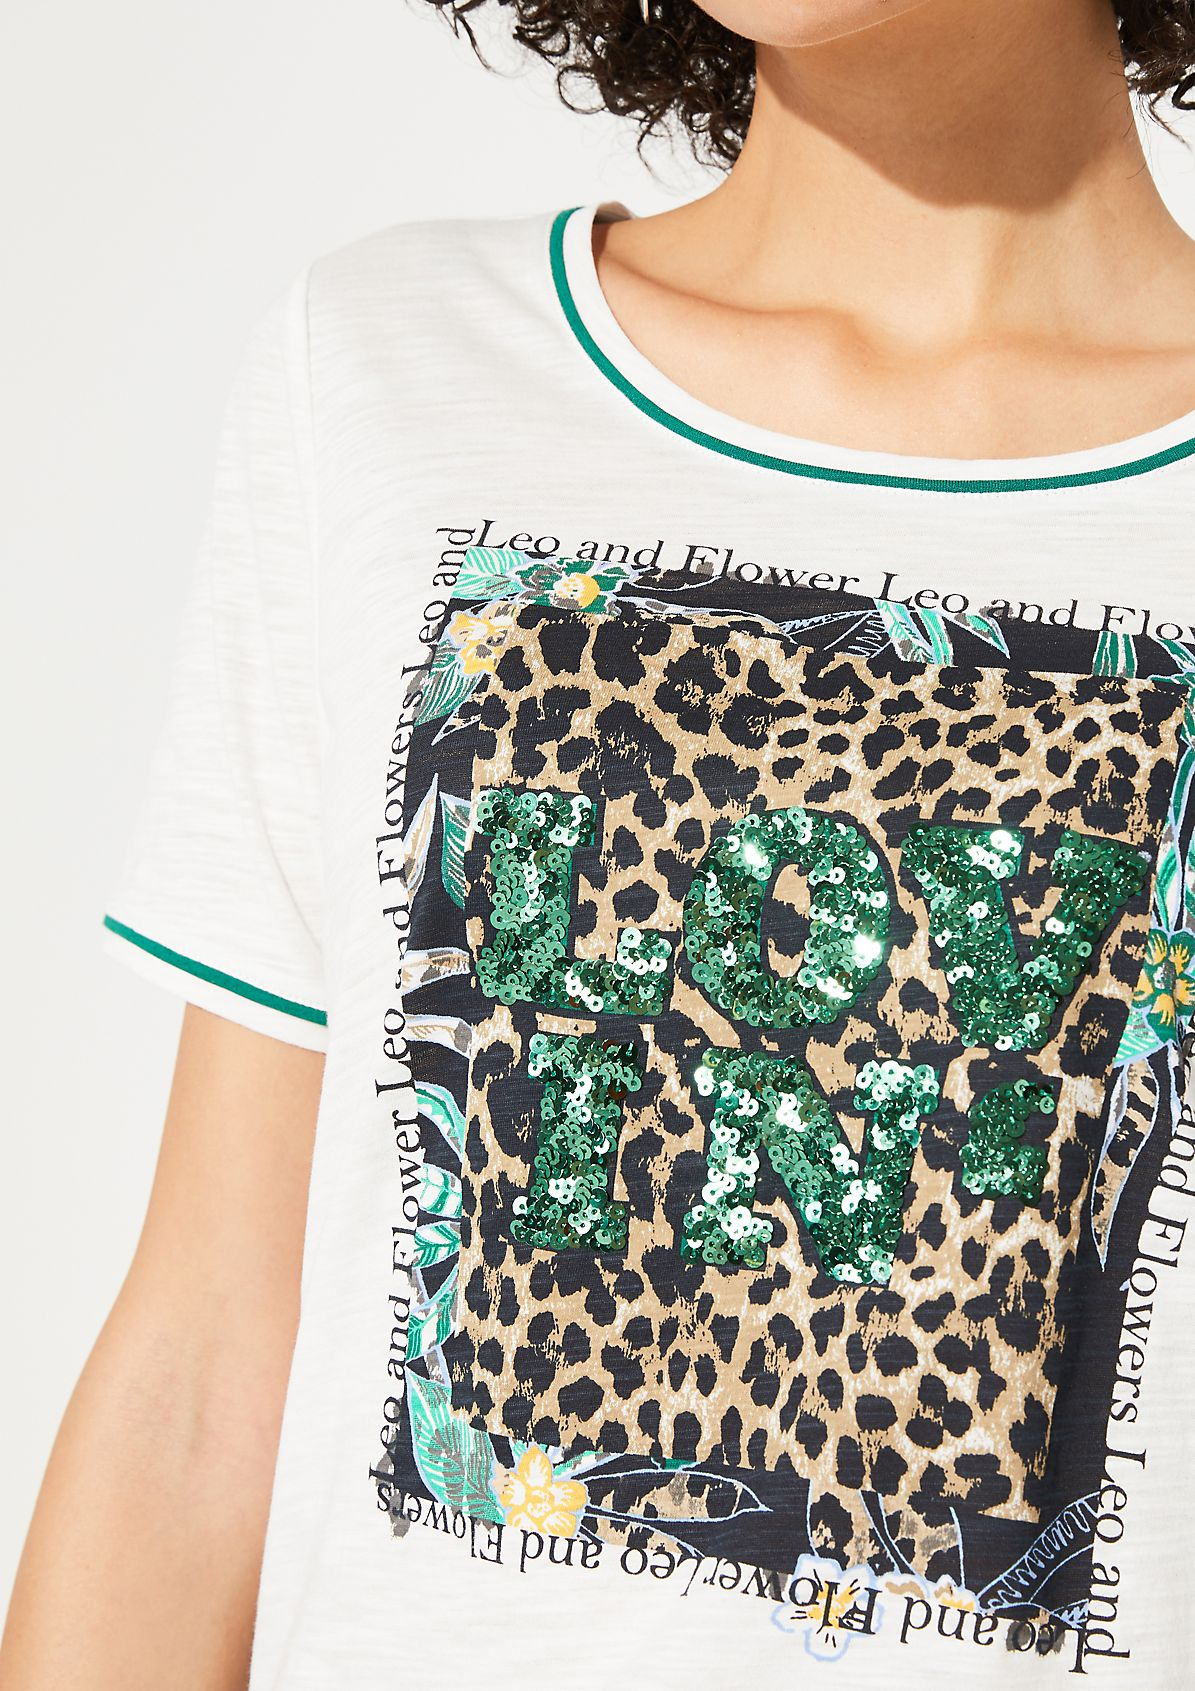 Jersey top with a statement print and sequins from comma